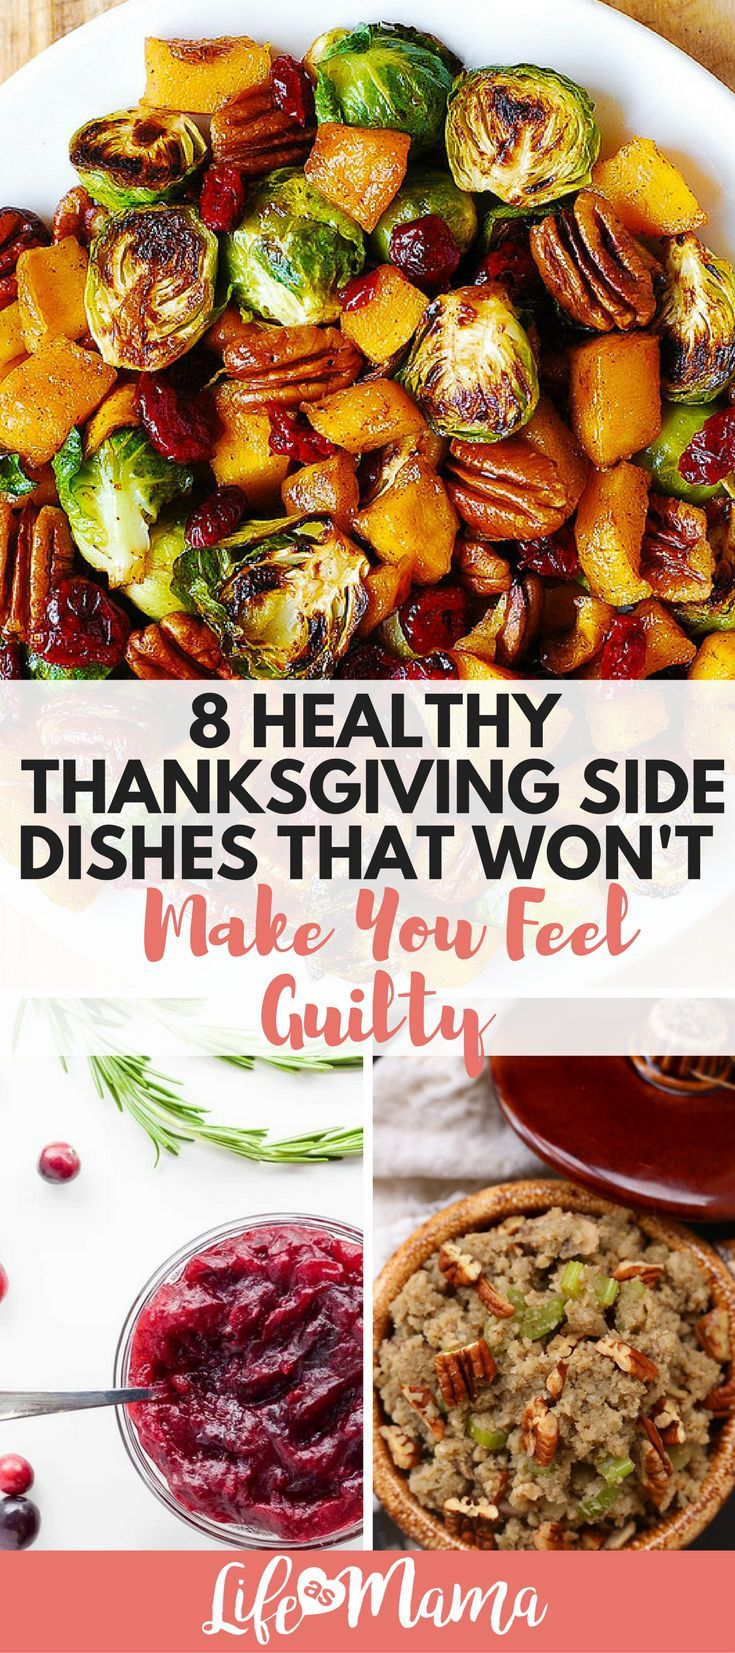 8 Healthy Thanksgiving Side Dishes That Won't Make You Feel Guilty #thanksgivingrecipes